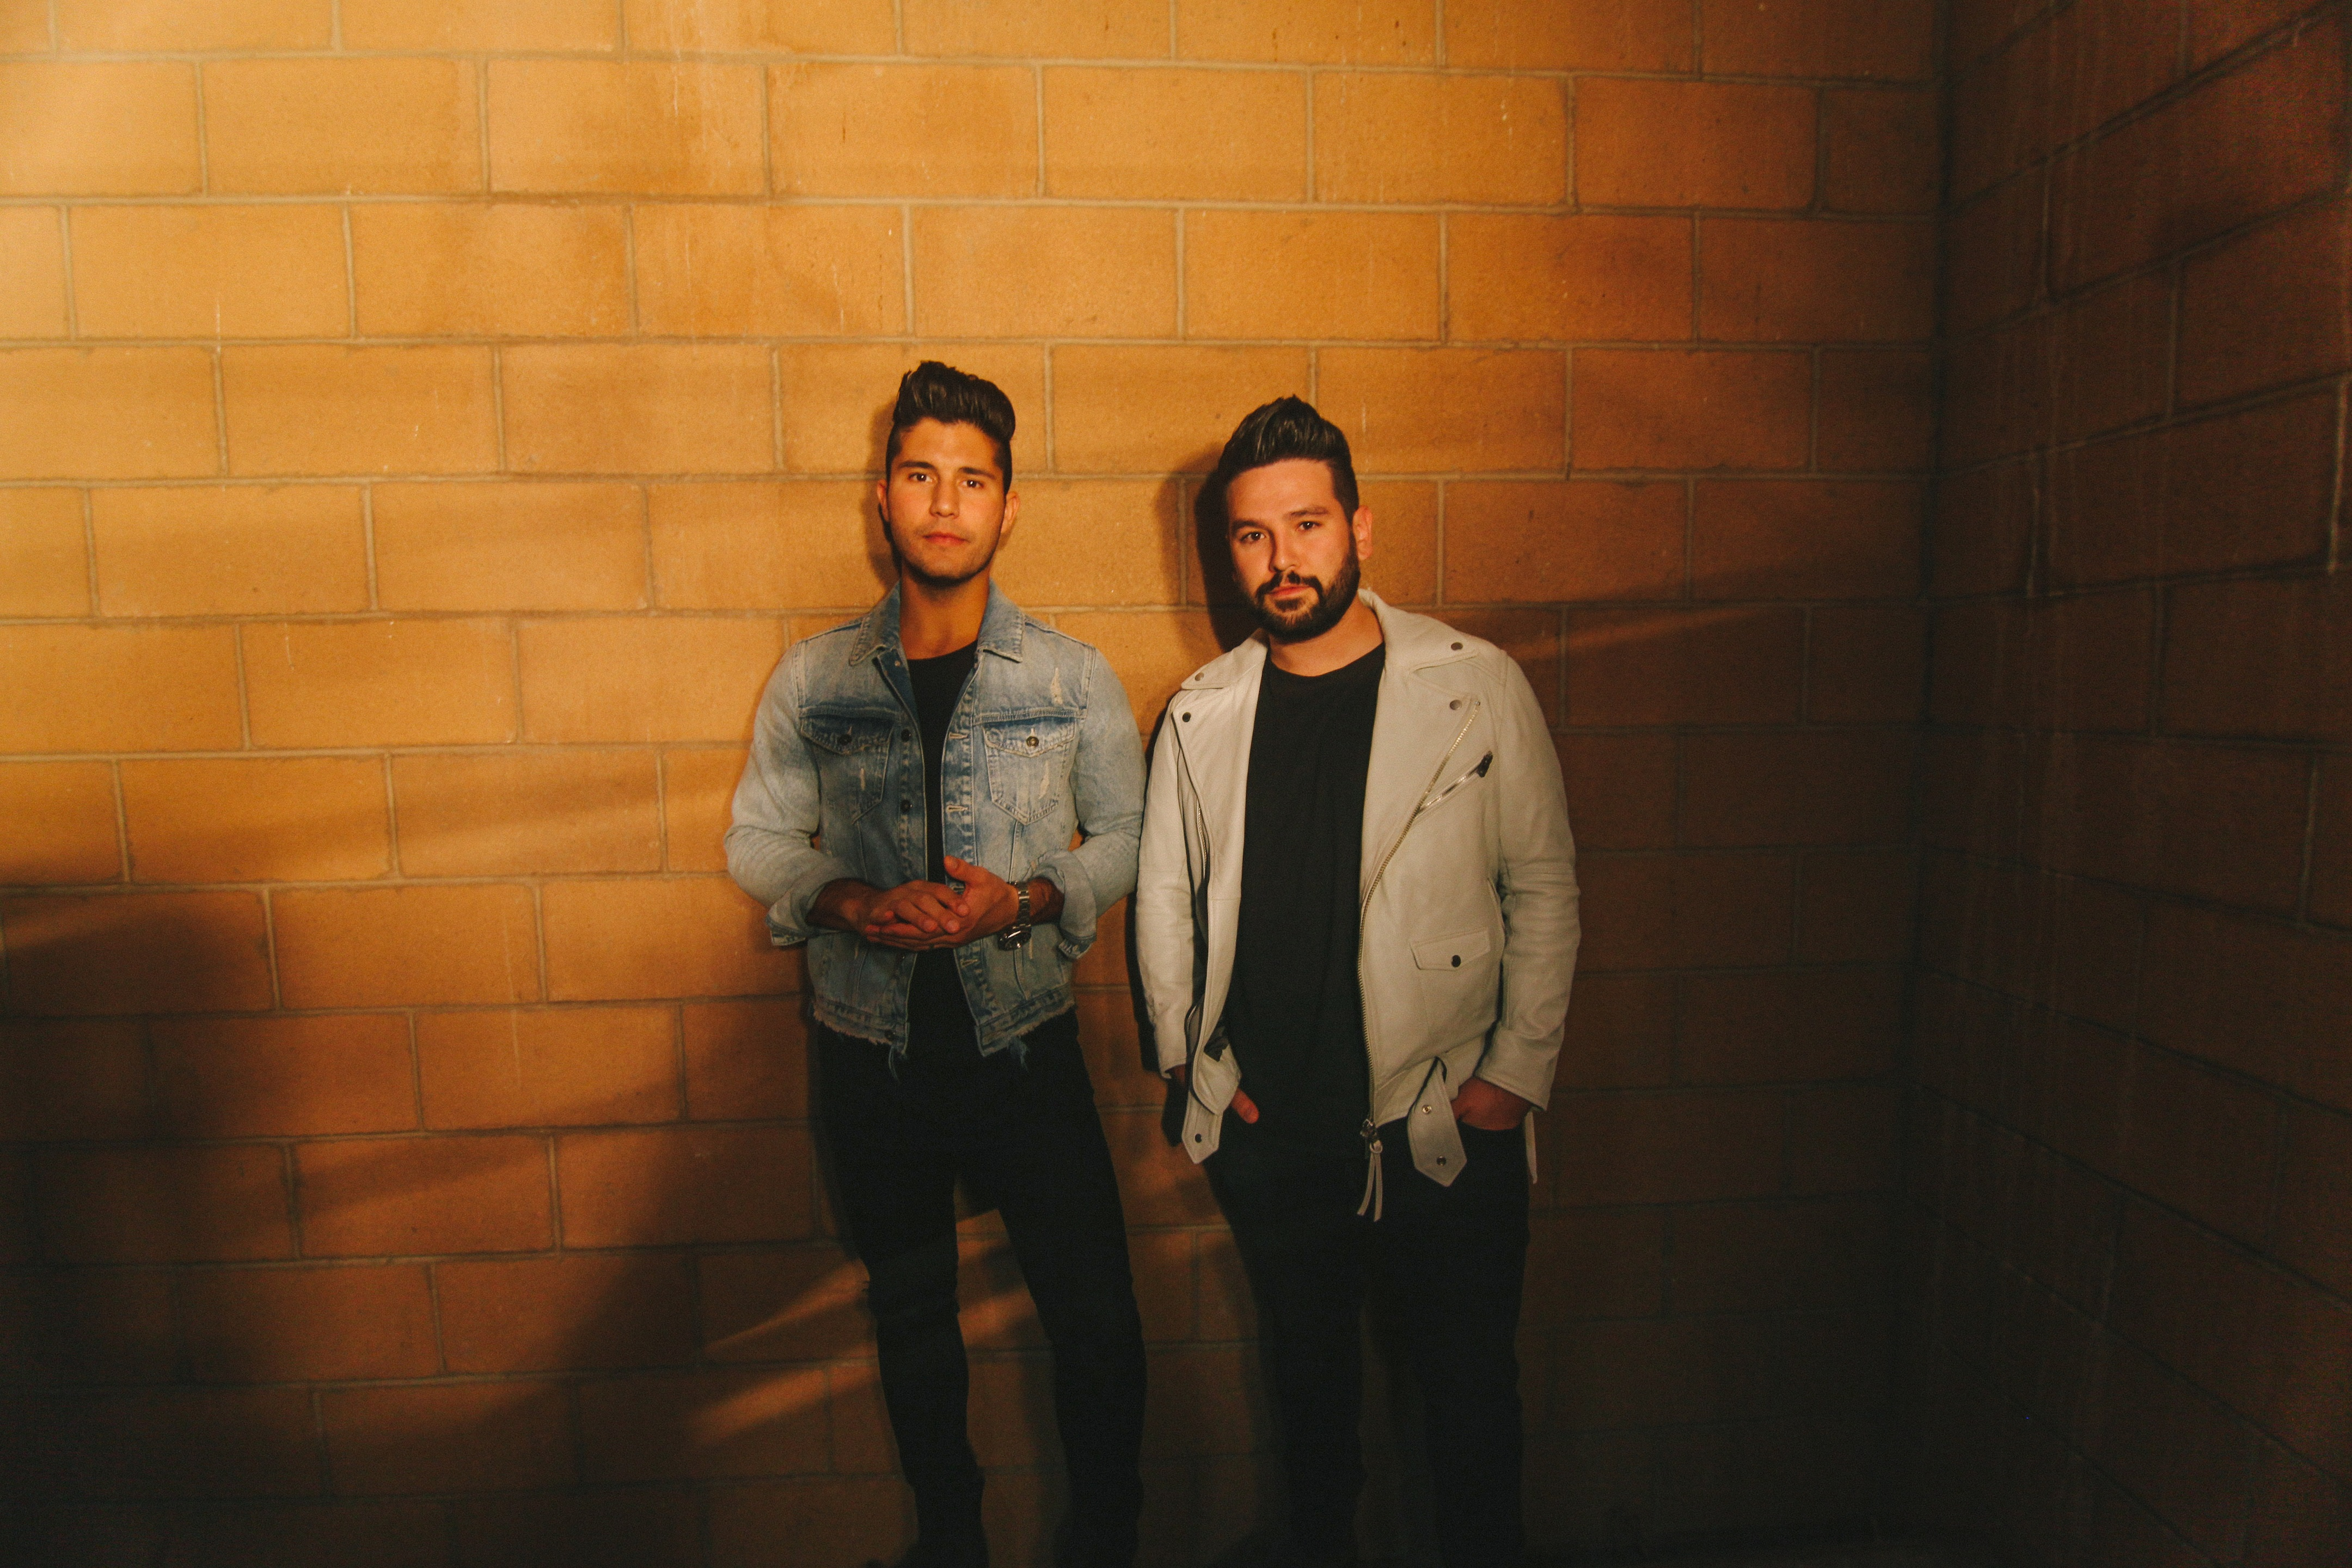 Image result for dan and shay justin beiber 10,000 hours